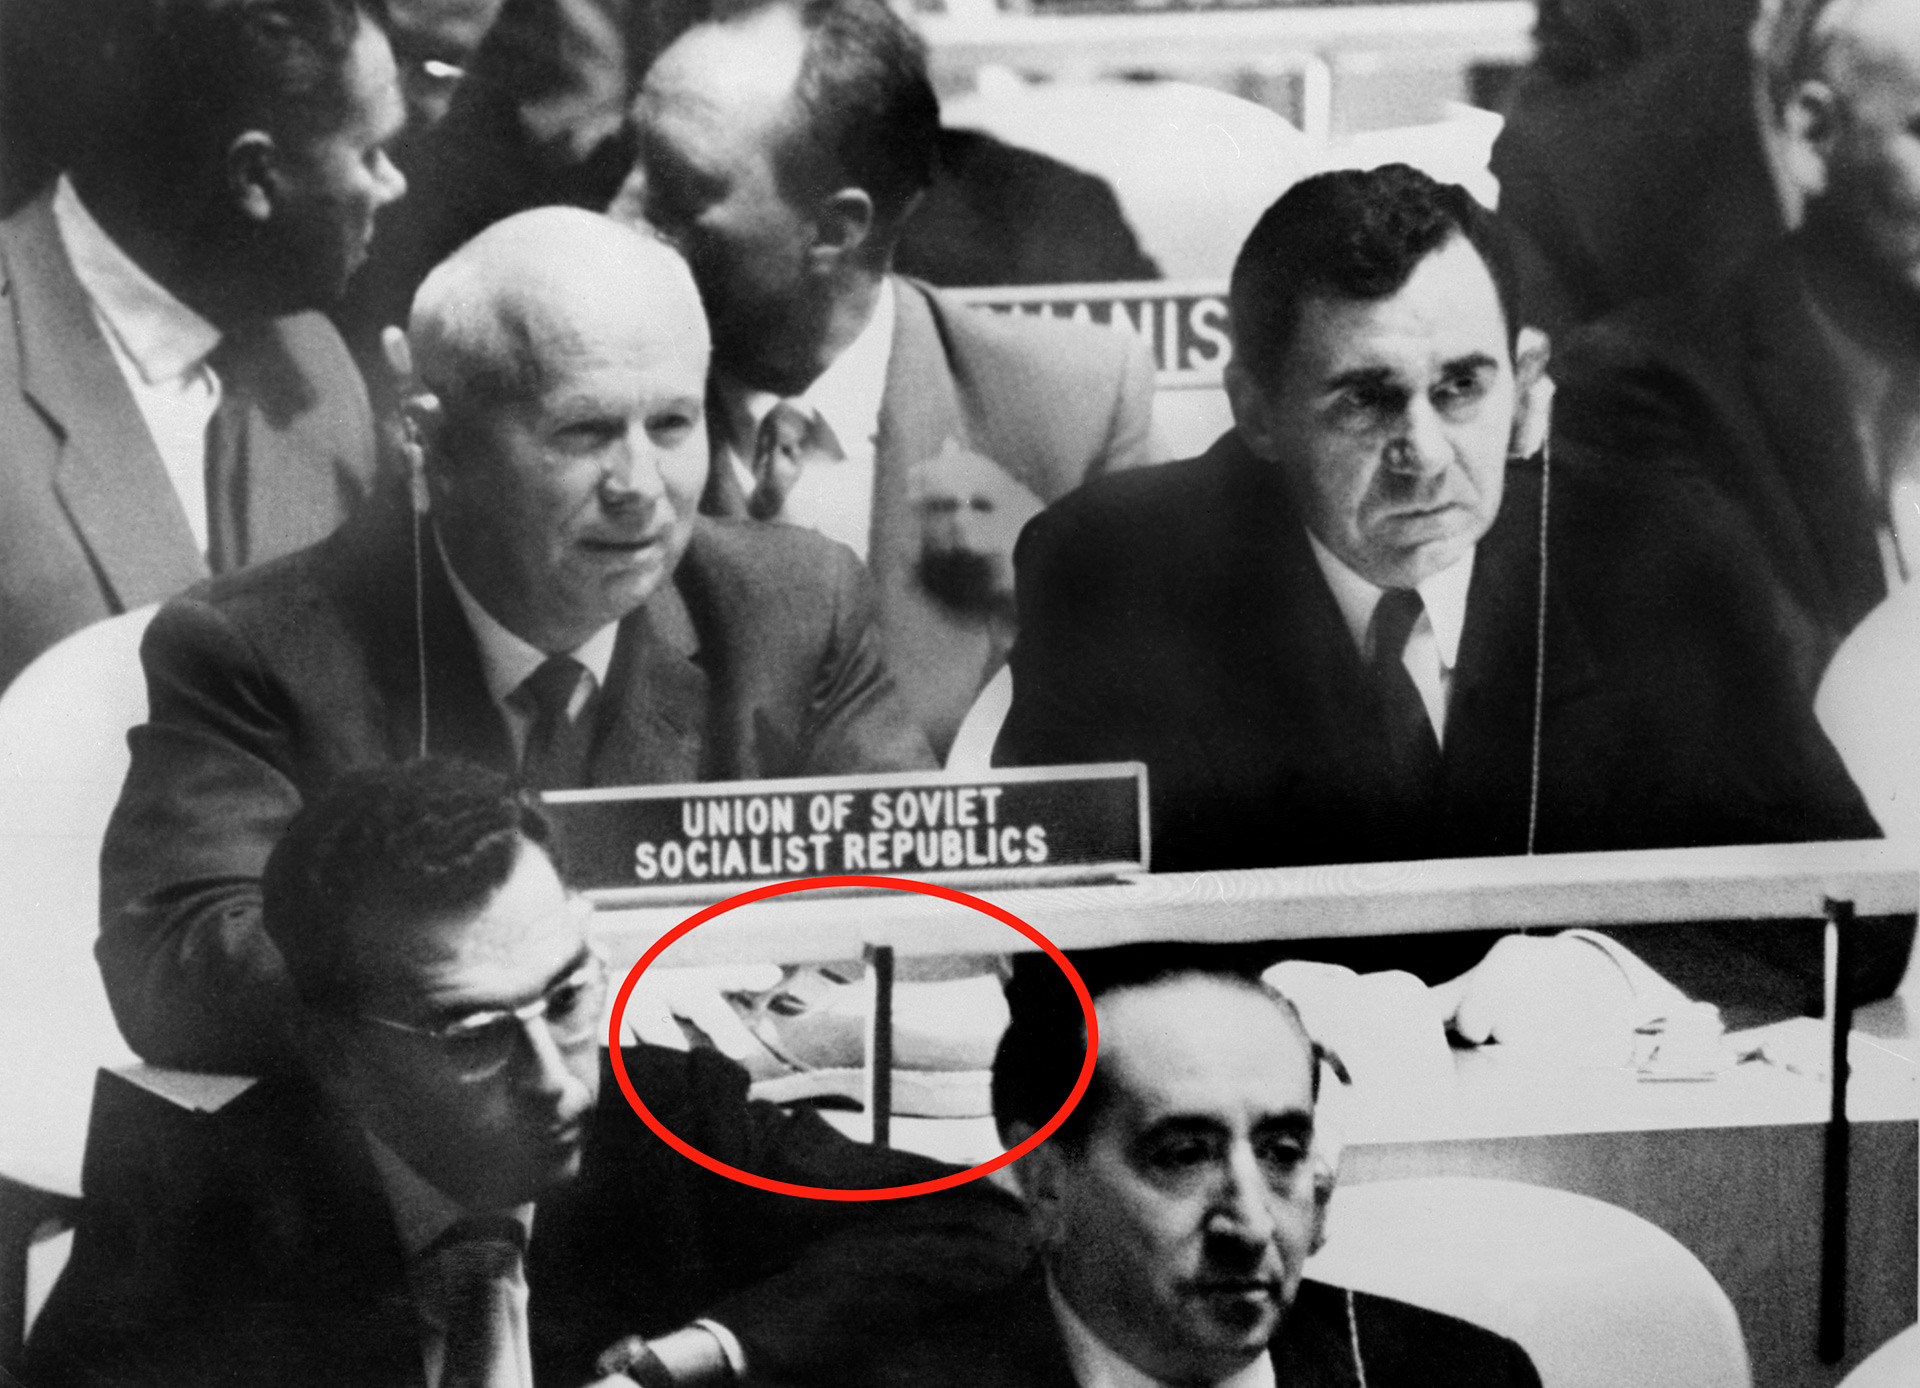 The actual photo of Nikita Khrushchev and Soviet Minister of Foreign Affairs Andrey Gromyko (R) at the meeting of the General Assembly of the United Nations on October 12, 1960. Red circle marks the shoe on Khrushchev's table.